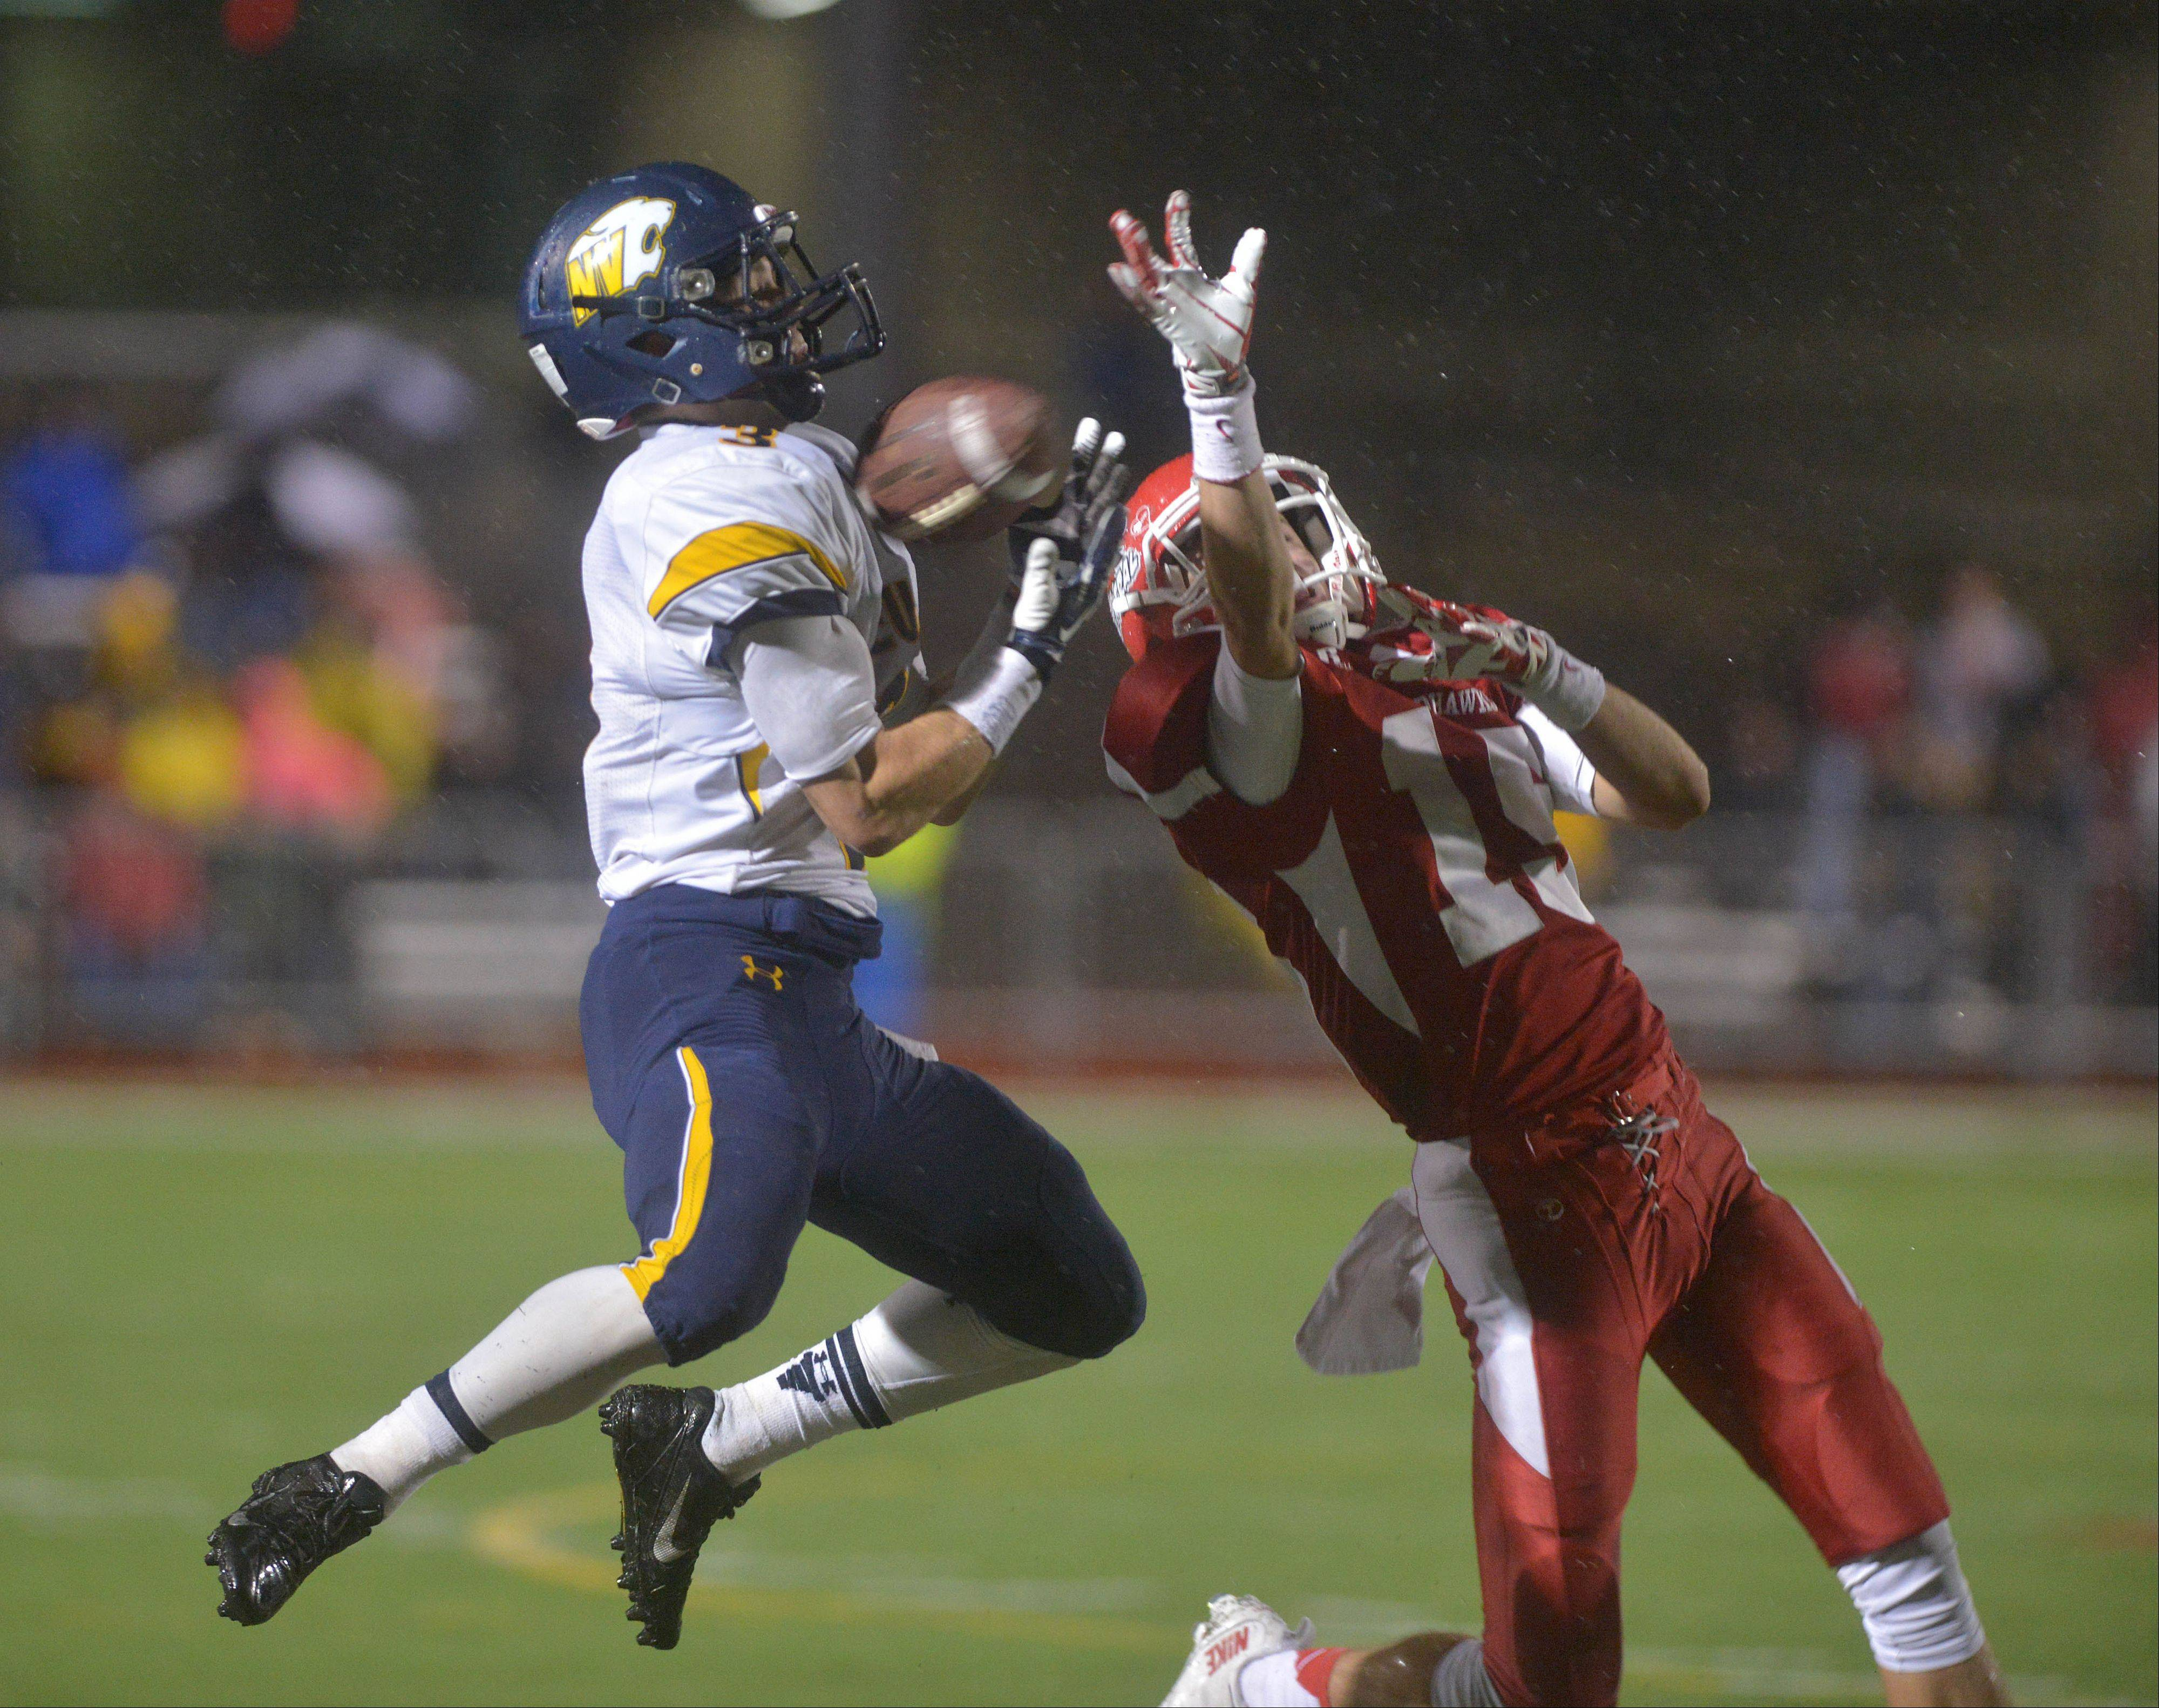 Images: Neuqua Valley at Naperville Central football playoffs